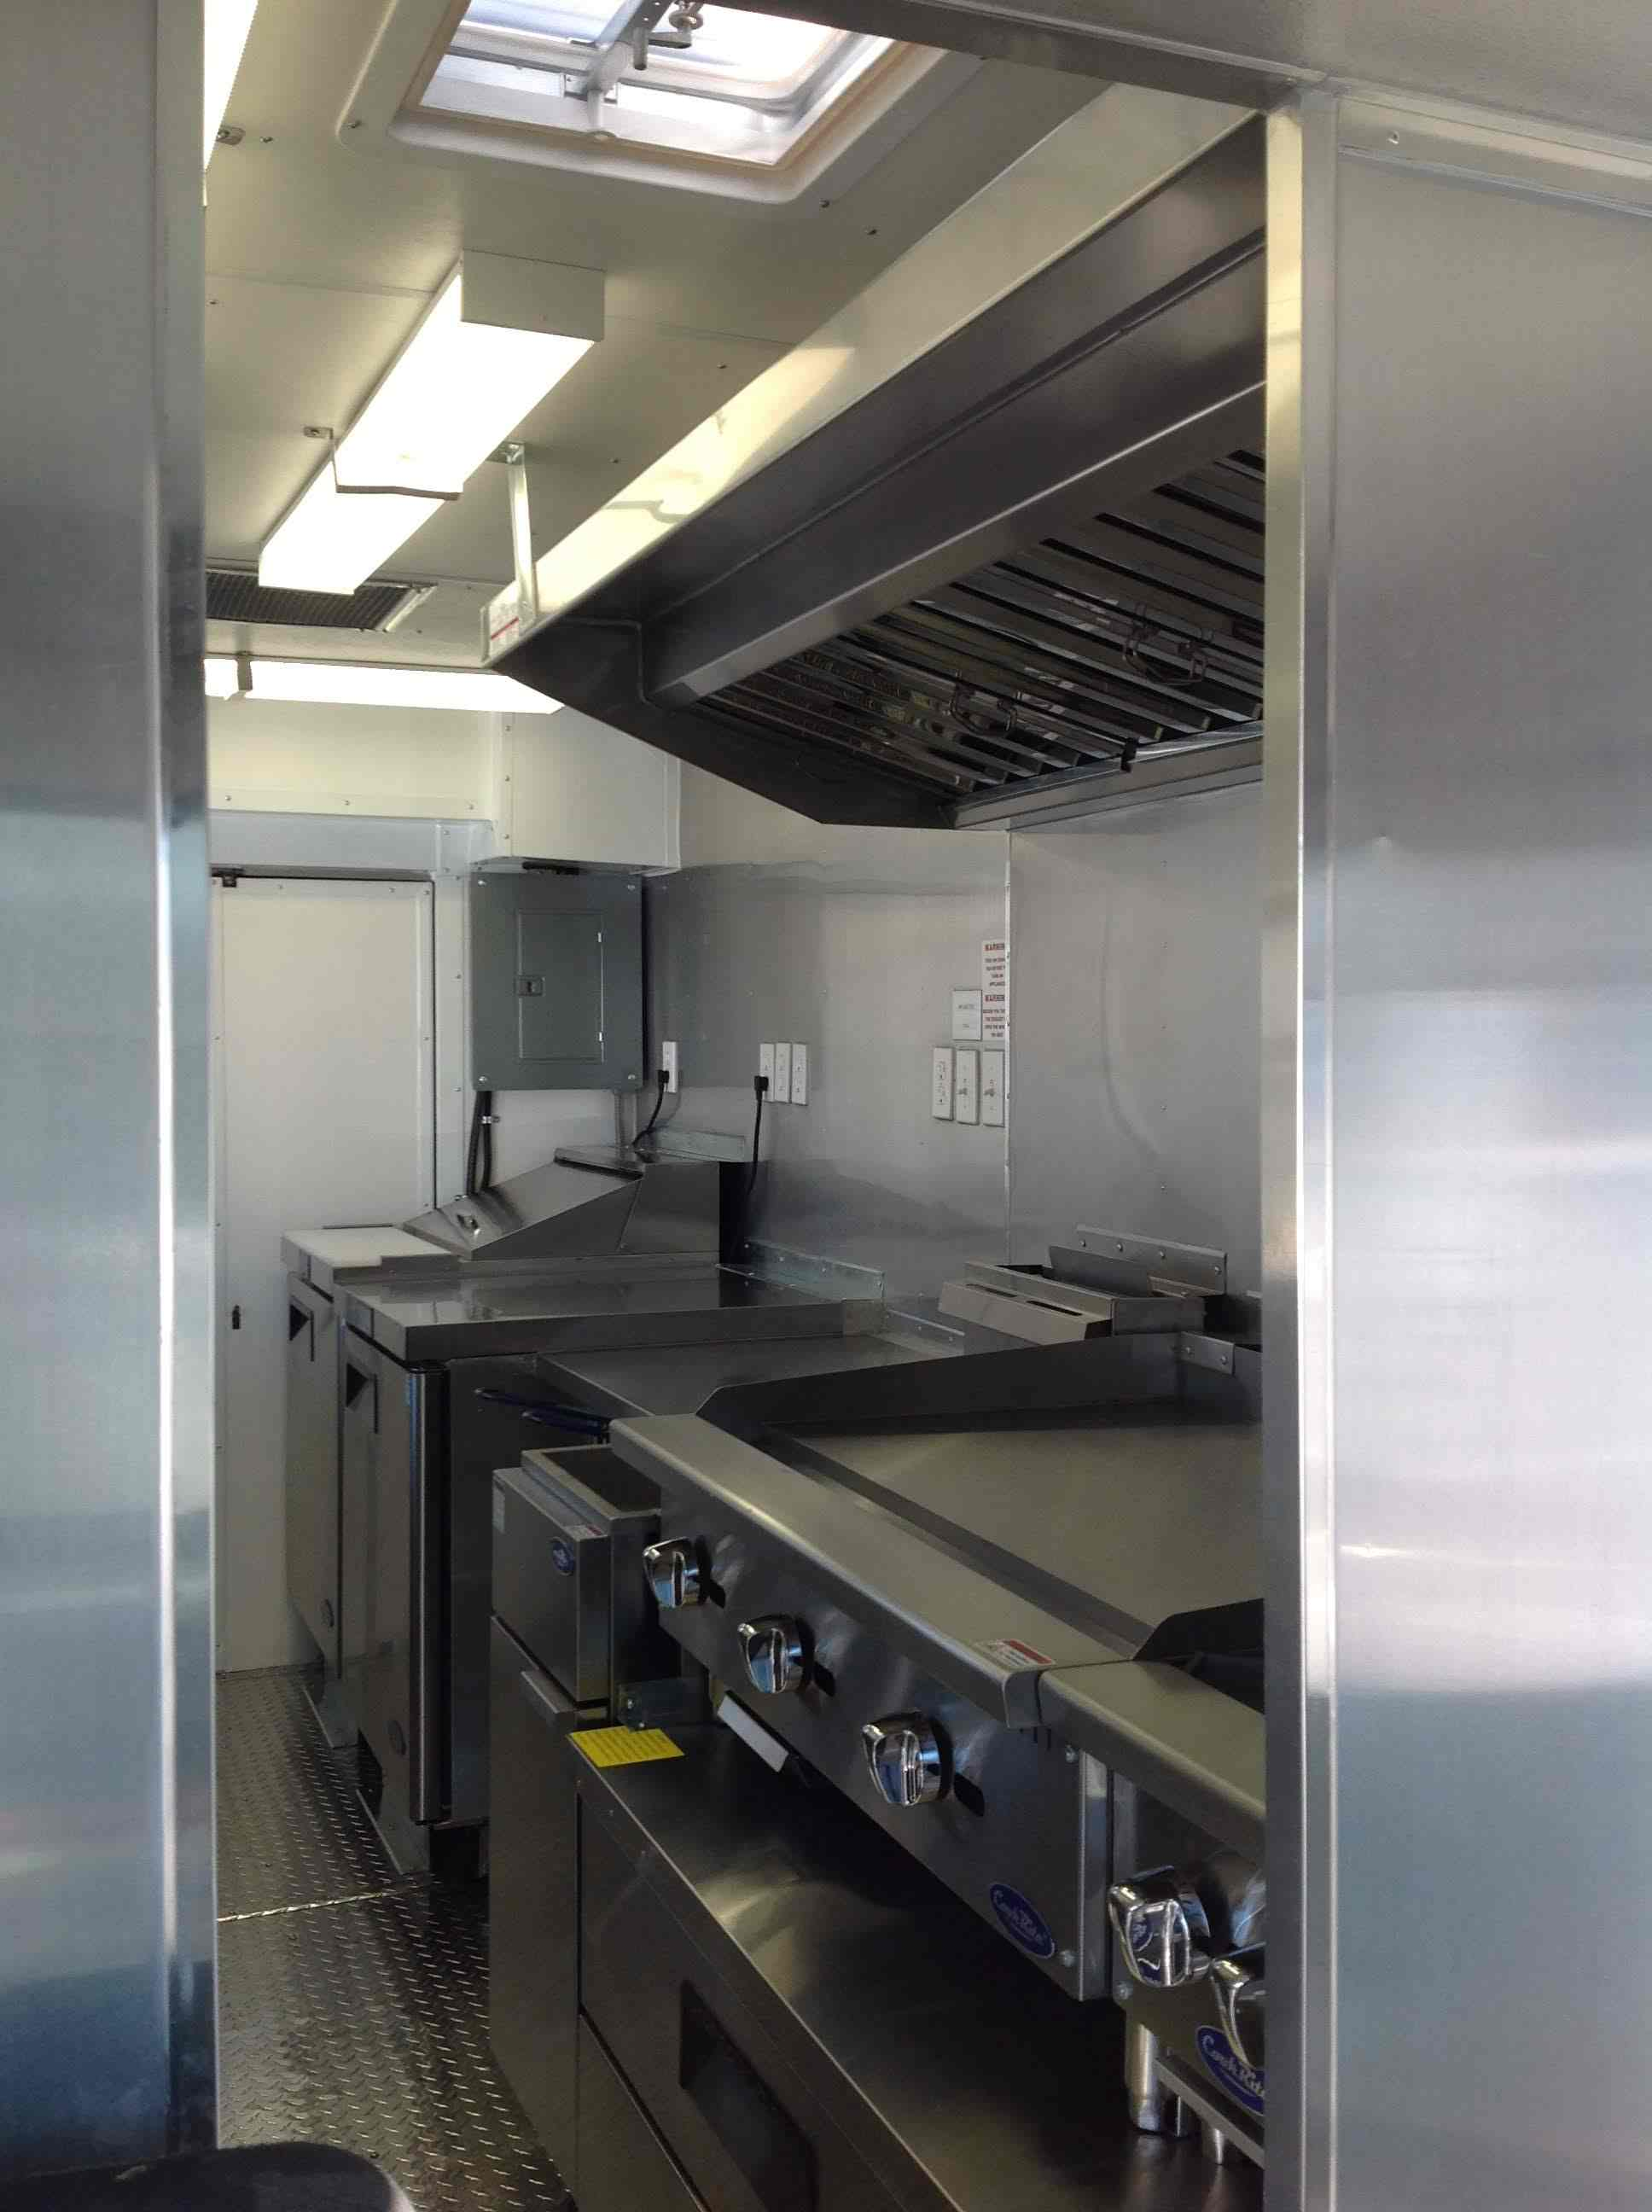 Idaho Foodtruck Interior Kitchen Install to Code